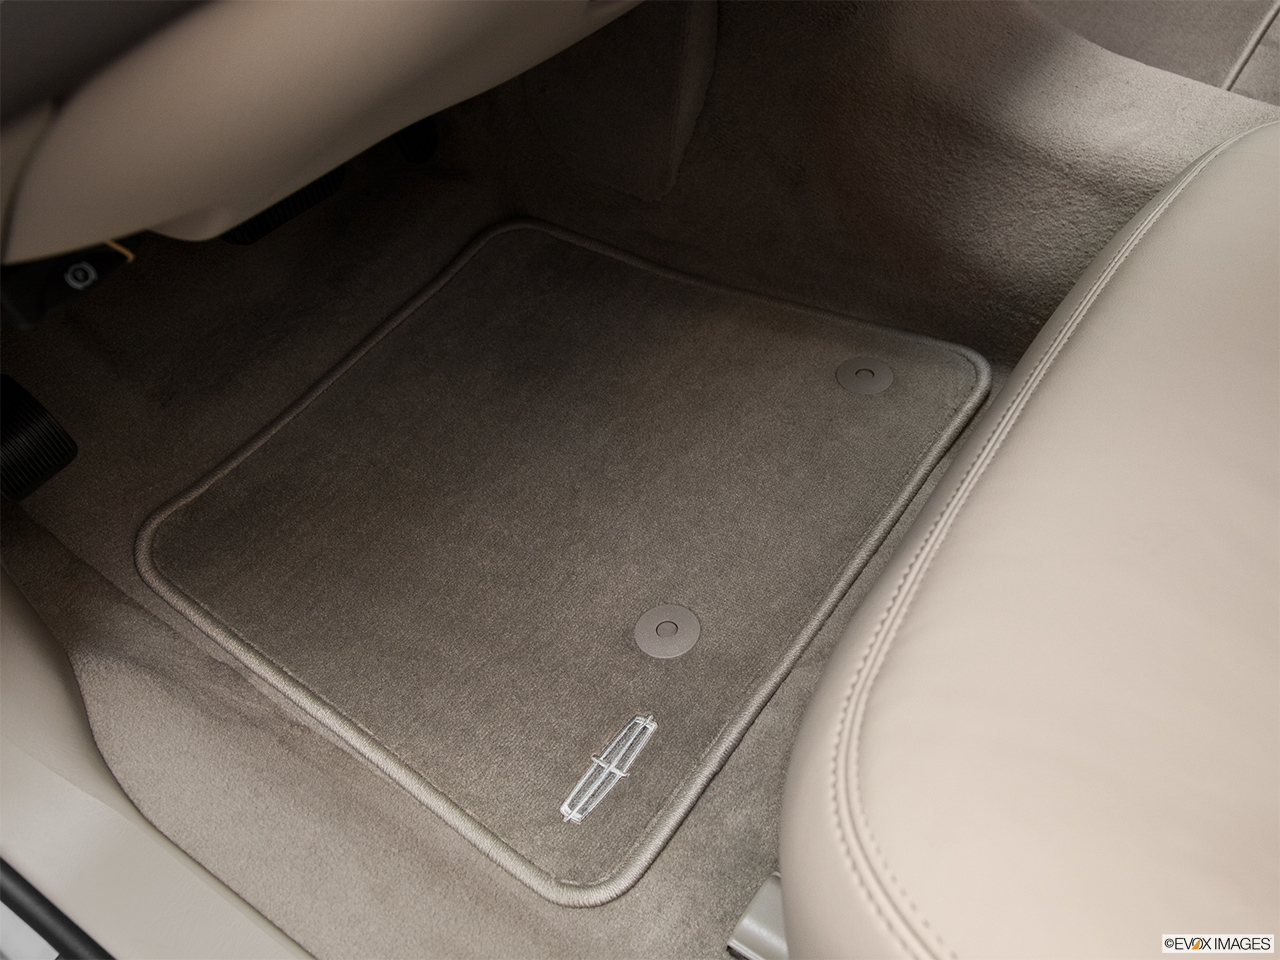 2011 Lincoln Town Car Signature Limited Driver's floor mat and pedals. Mid-seat level from outside looking in.